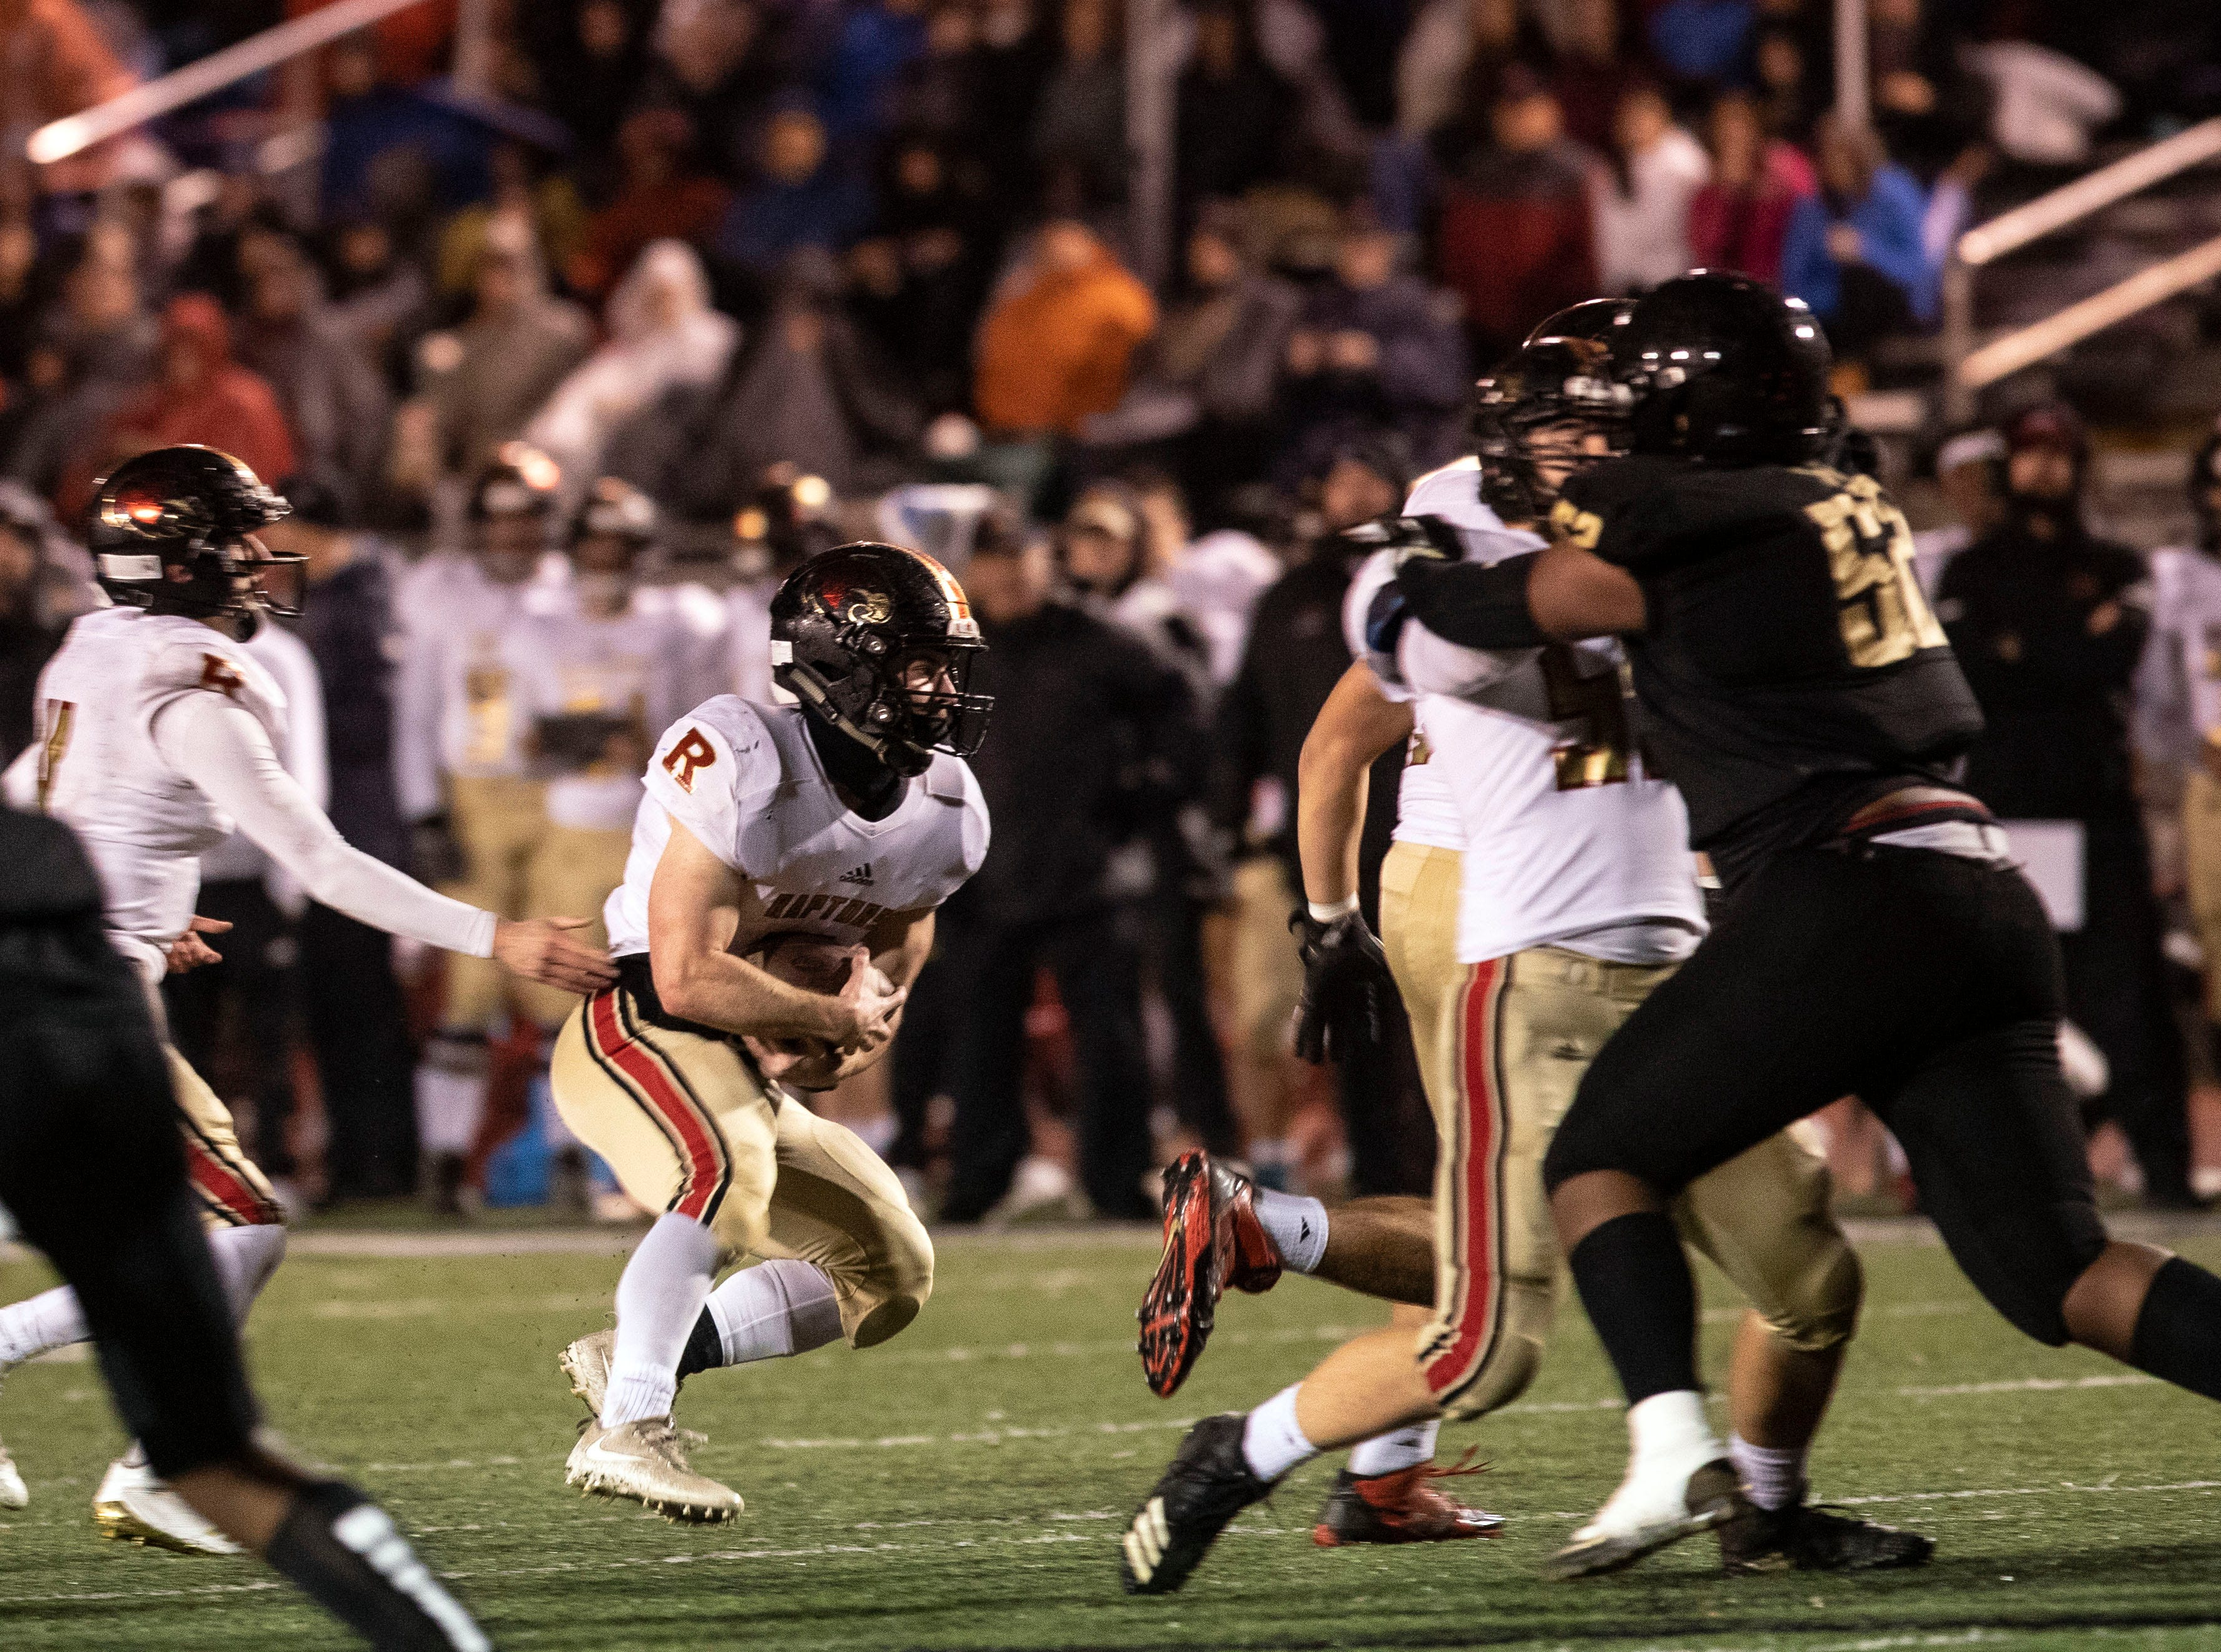 Ravenwood Raptors quarterback Brian Garcia (4) hands off to running back William Baine (8),  during the first half of a high school playoff football game, Friday, Nov. 23, 2018.